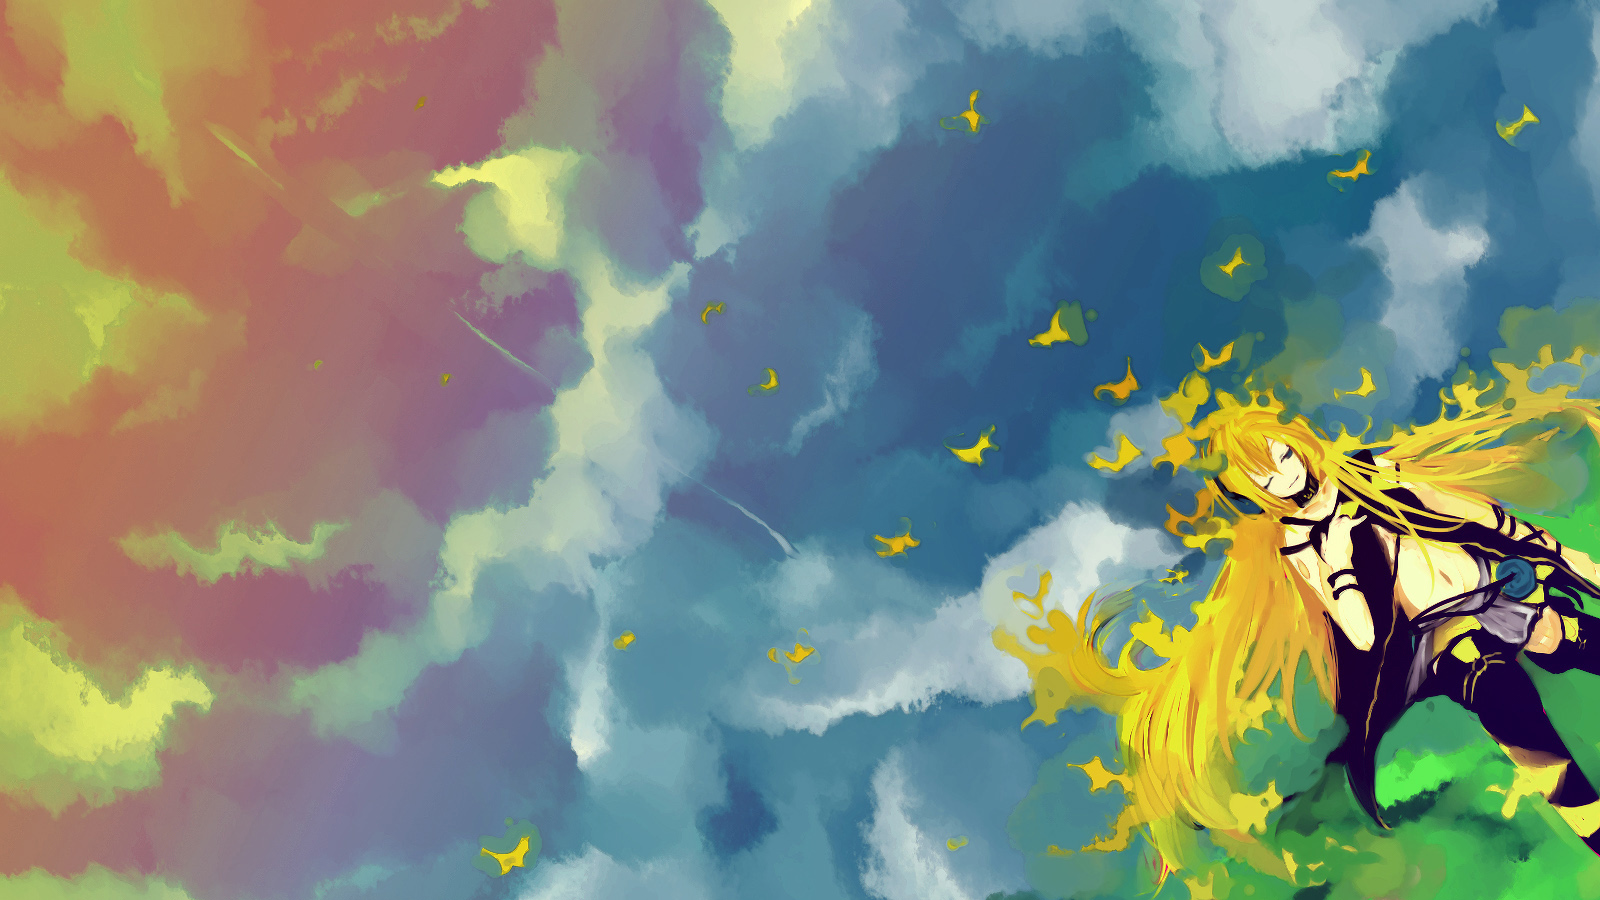 lily vocaloid wallpaper - photo #27